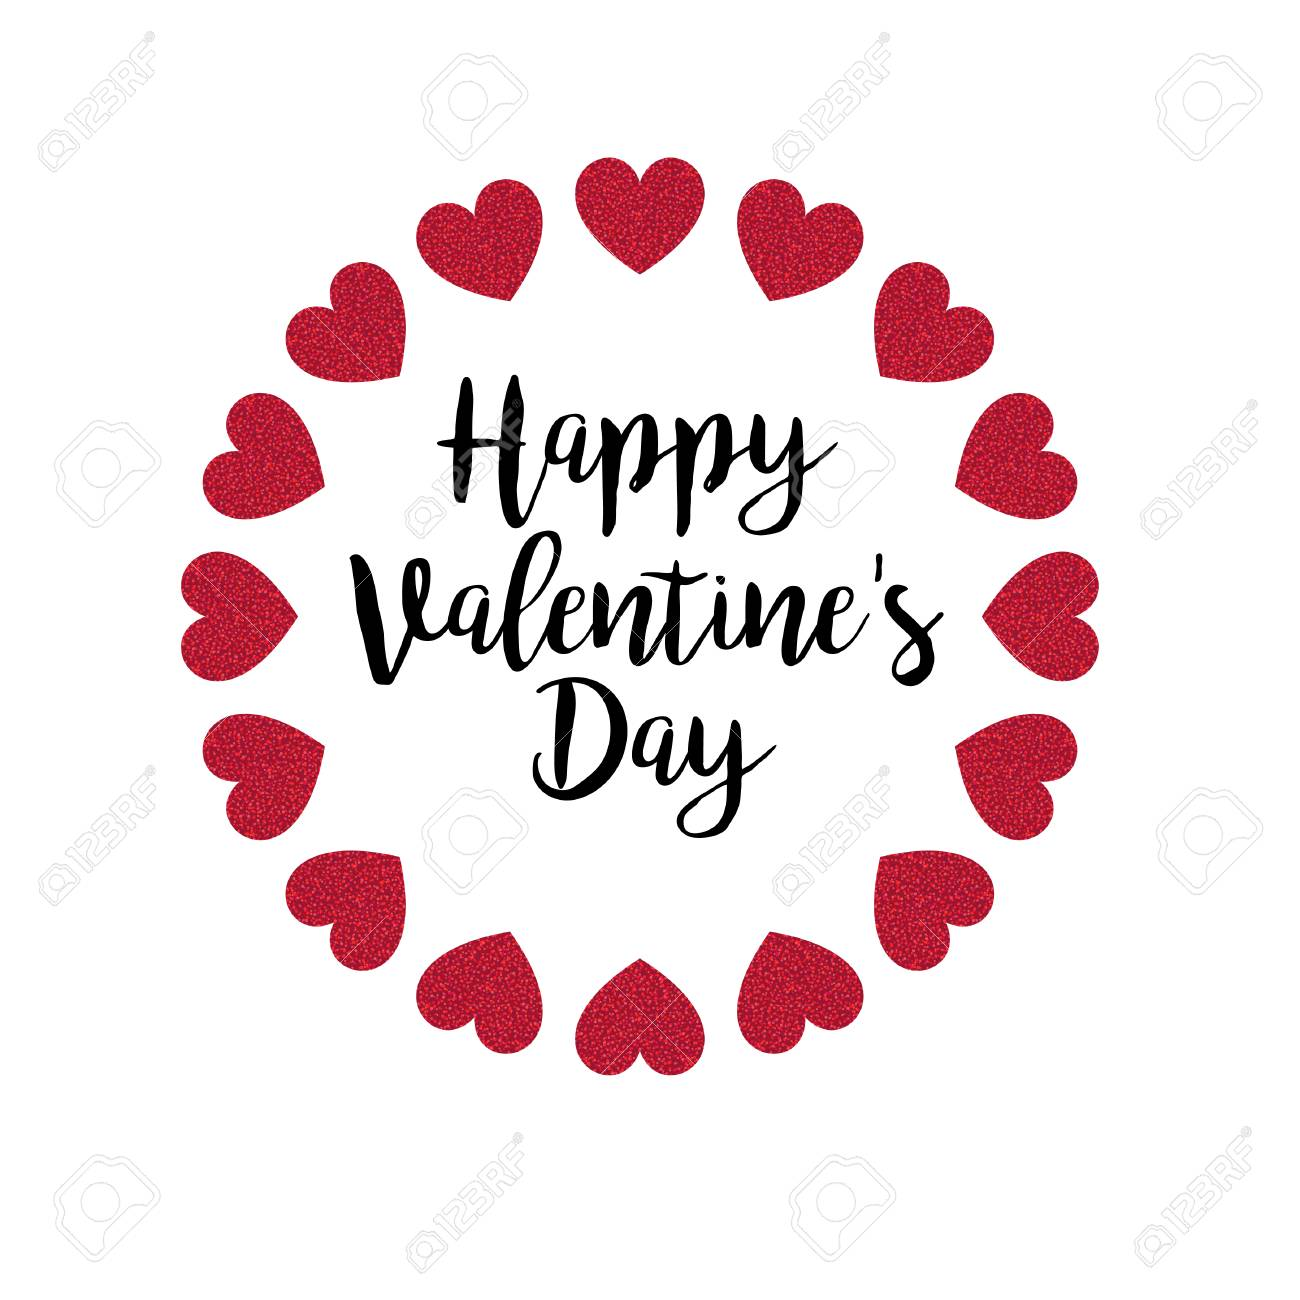 Happy Valentines Day With Glitter Hearts Vector Graphic Royalty Free Cliparts Vectors And Stock Illustration Image 94266002